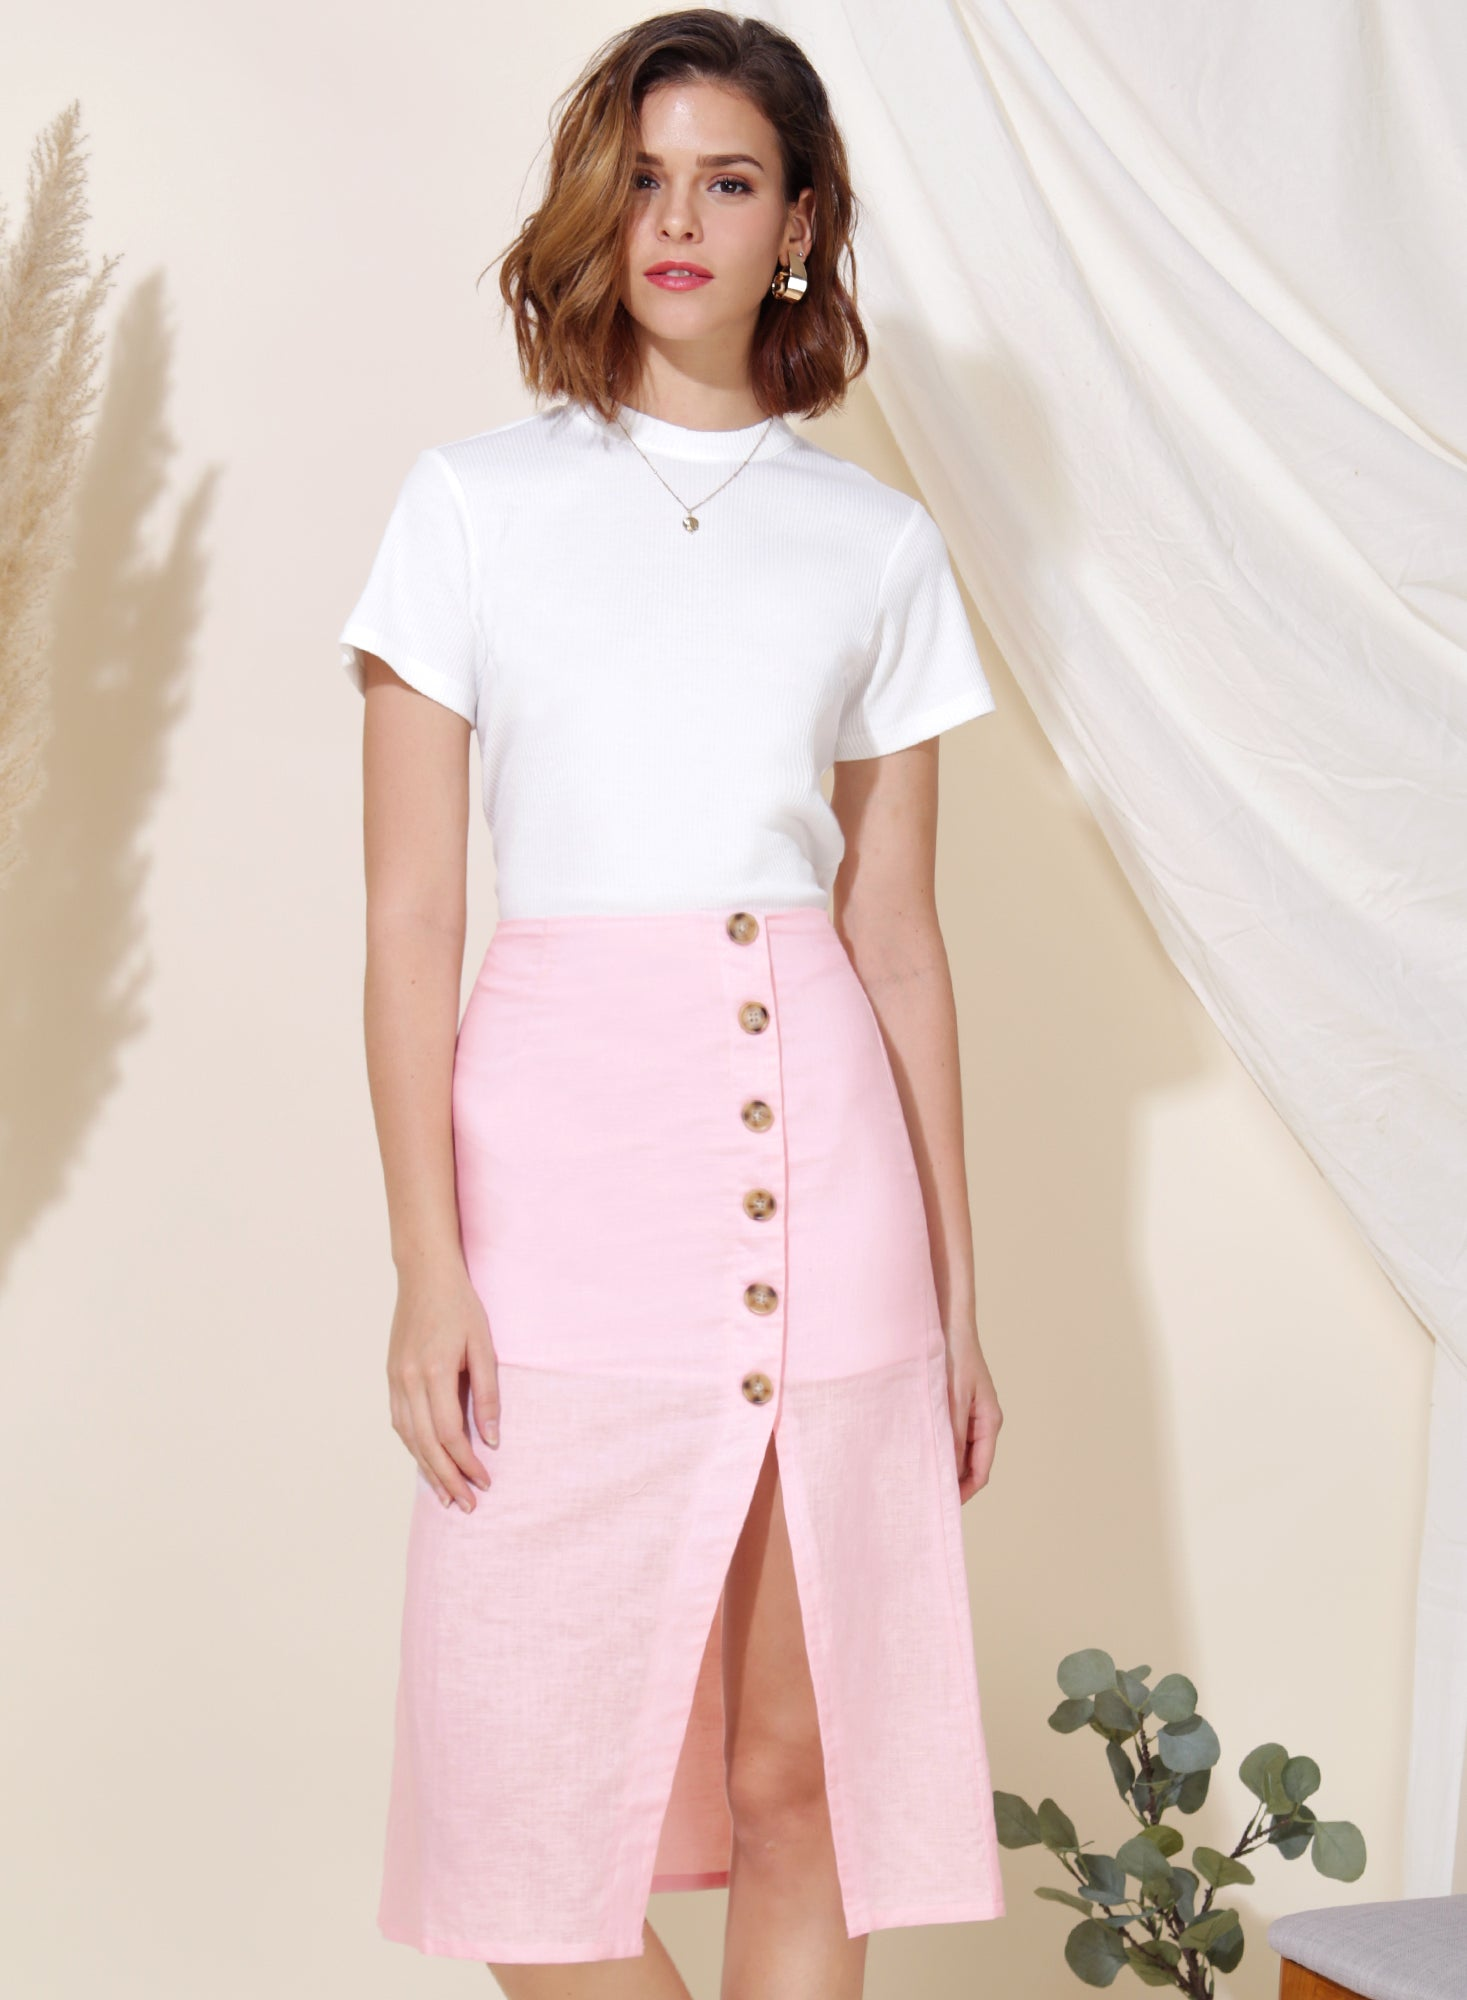 Wonder Linen Midi Skirt (Candyfloss) at $ 38.00 only sold at And Well Dressed Online Fashion Store Singapore